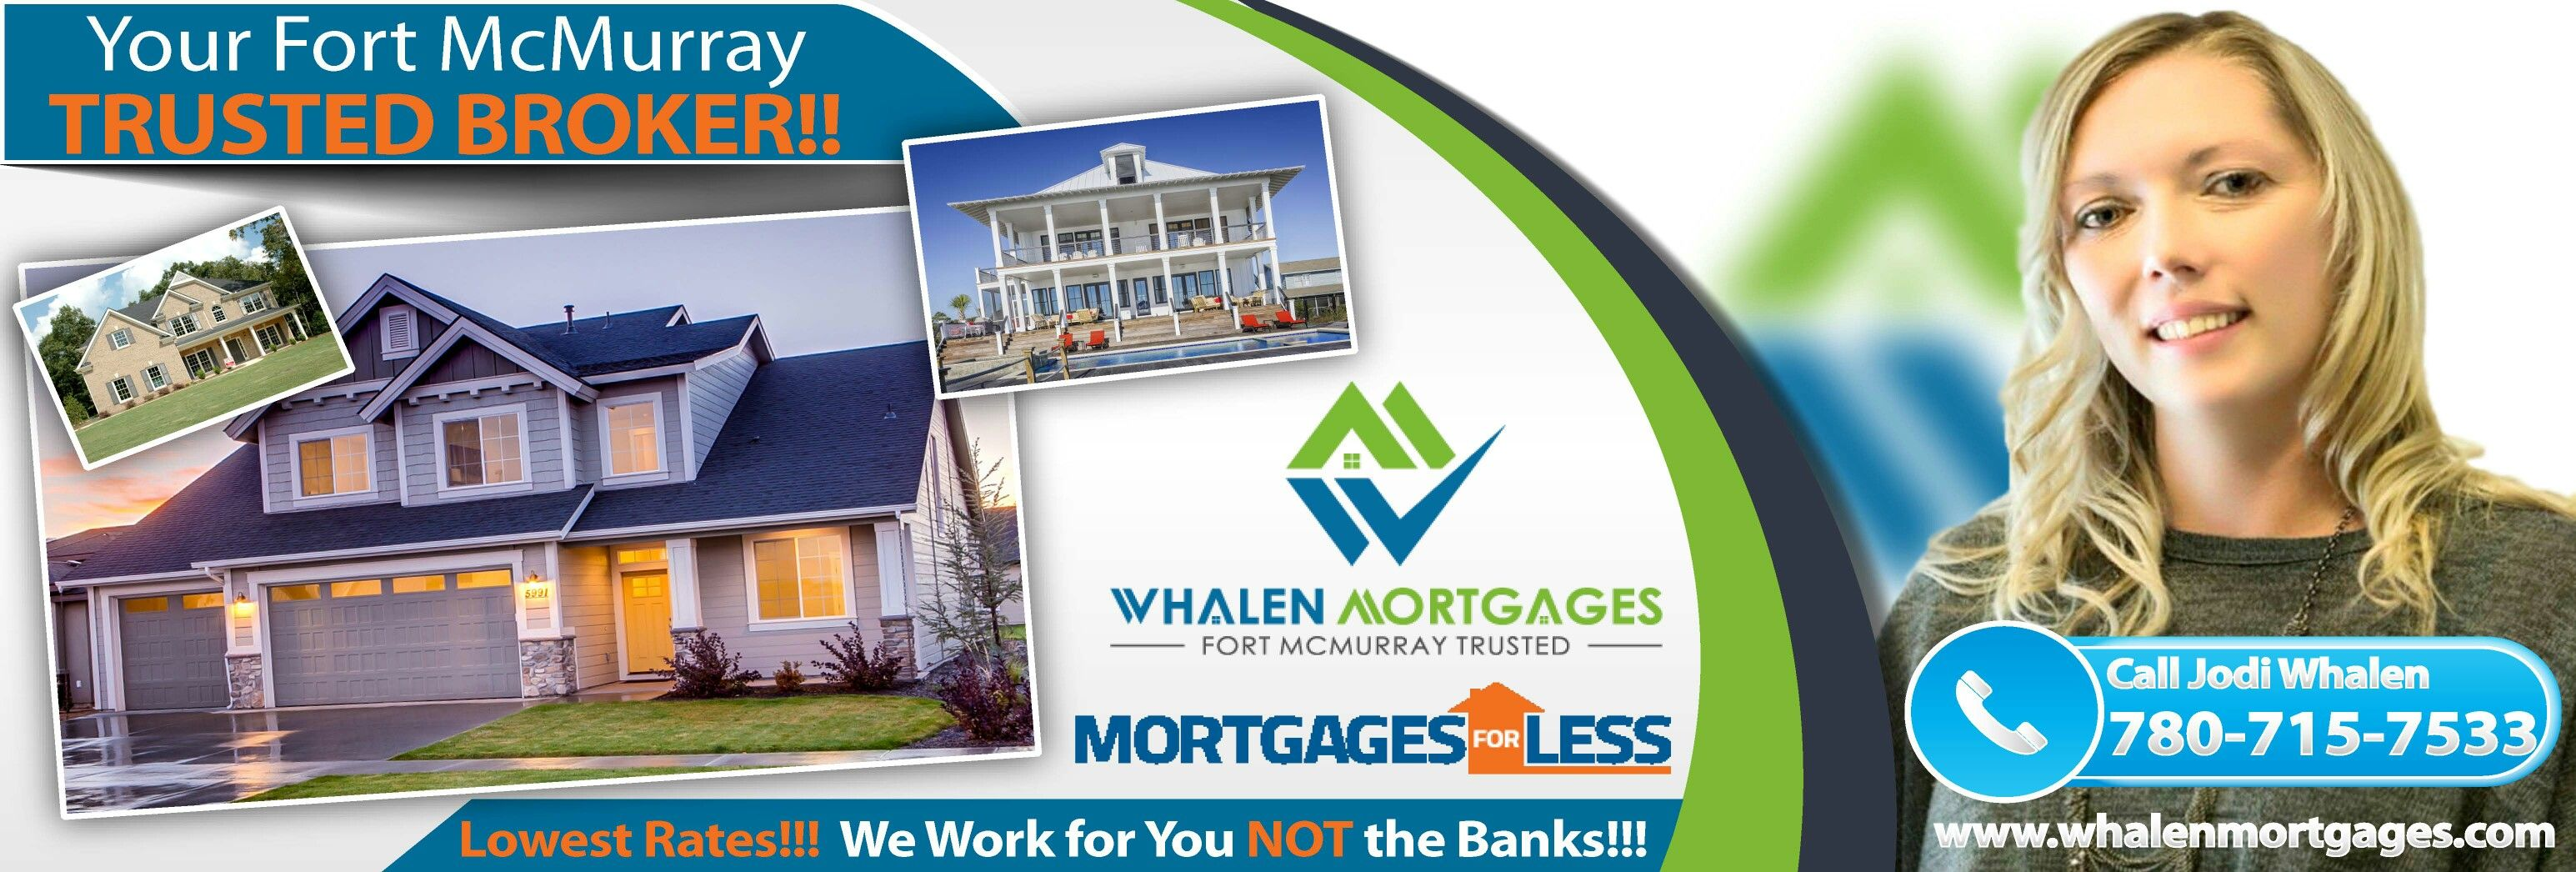 Pin by Whalen Mortgages Fort McMurray on Mortgages